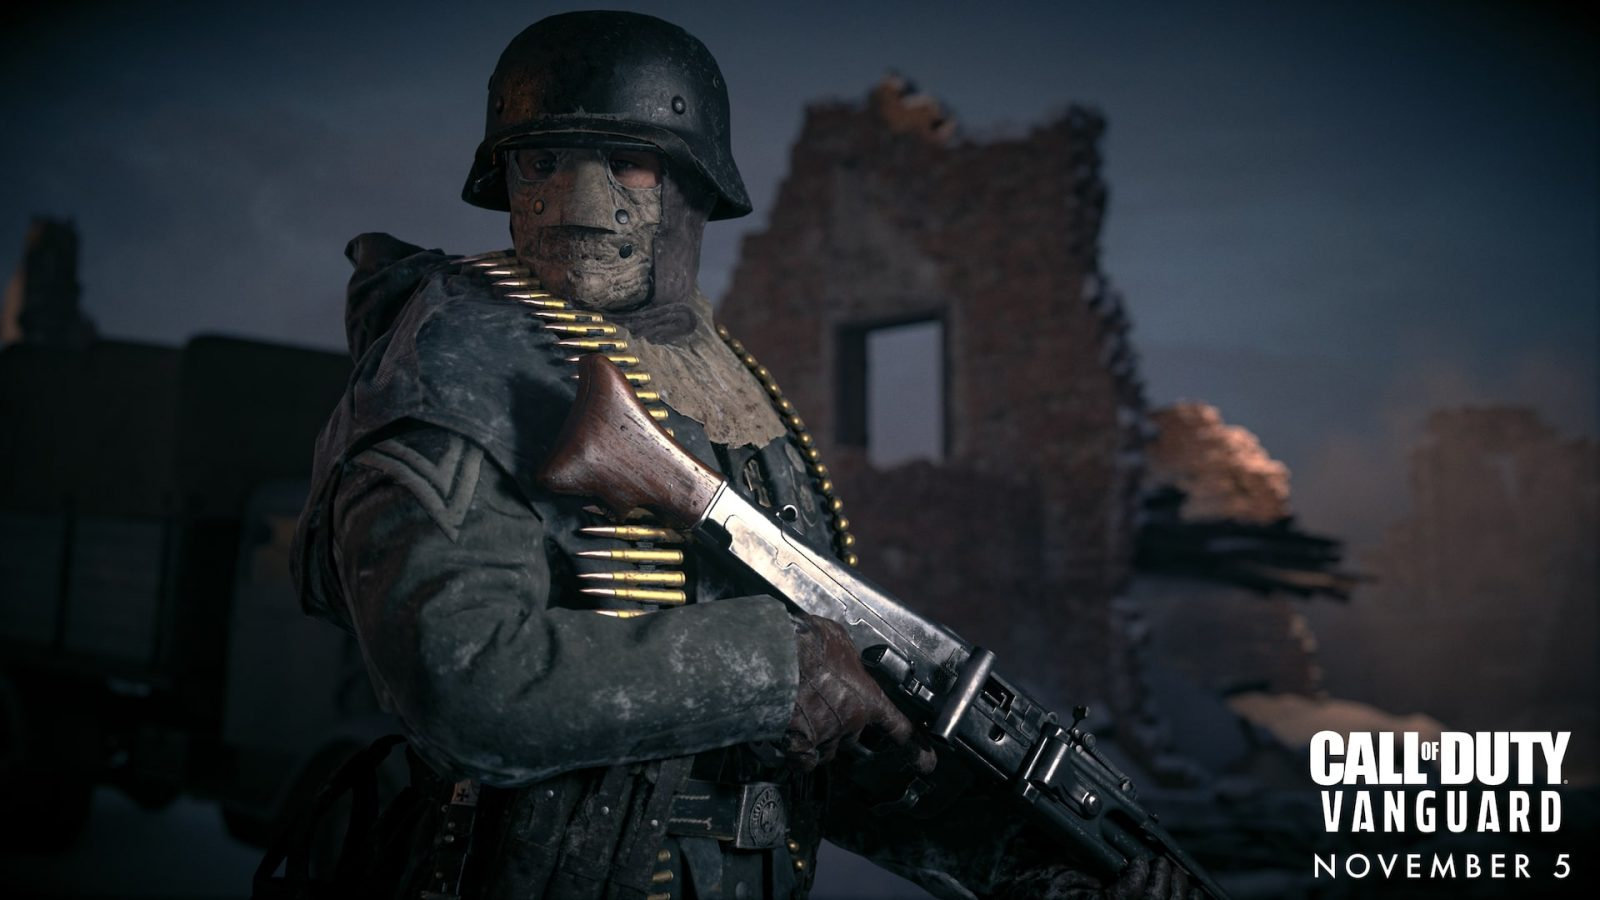 Call of Duty Gets Vanguard Zombies and War of the Dead Map: Details Inside